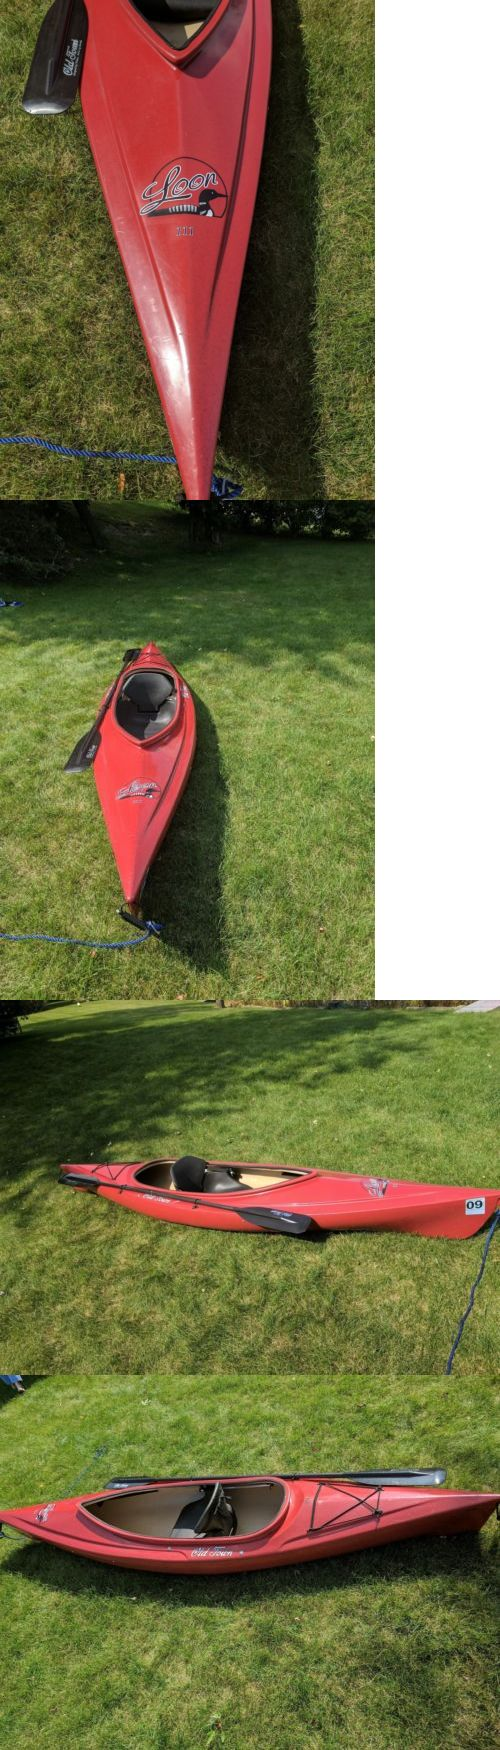 Kayaks 36122: Old Town Canoes And Kayaks Loon 111 Recreational Kayak Red, Gently Used -> BUY IT NOW ONLY: $500 on eBay!